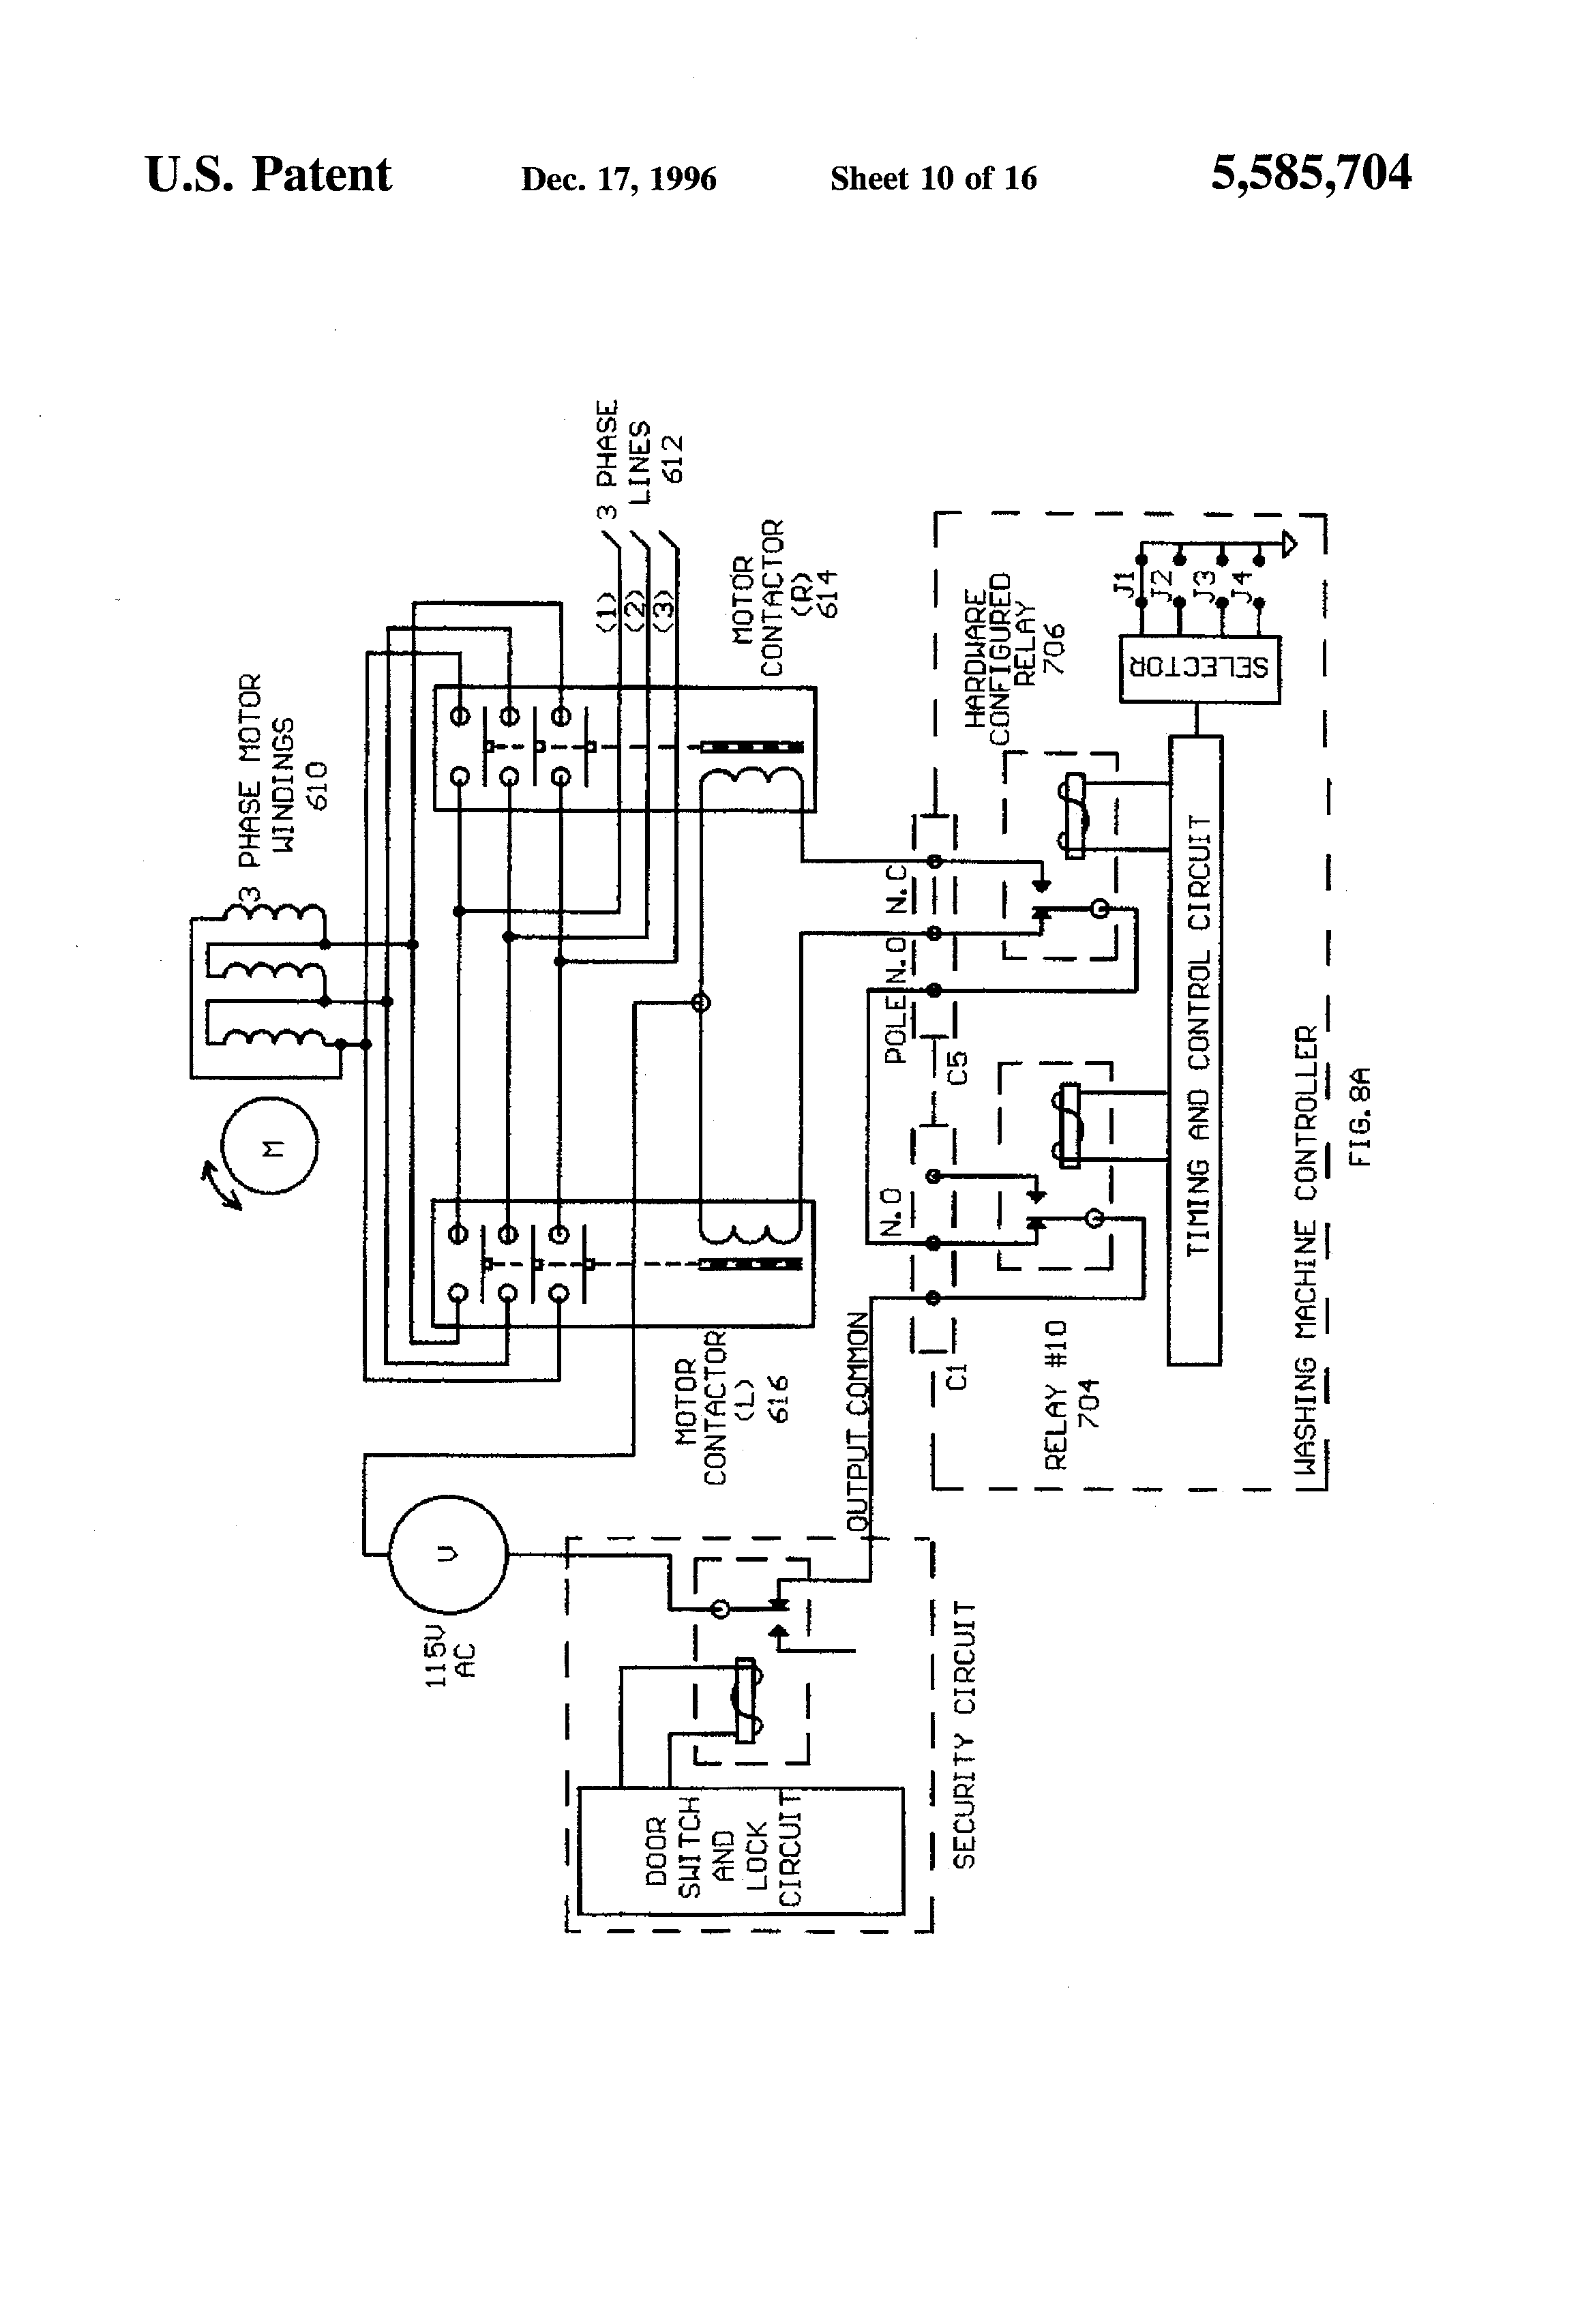 Whirlpool Washing Machine Motor Wiring Diagram basic washing ... on kenmore washing machine clutch, washing machine parts diagram, kenmore washing machine exploded view, estate washing machine wiring diagram, whirlpool stove wiring diagram, washing machine motor wiring diagram, samsung washing machine wiring diagram, kenmore washing machine repair, kenmore washing machine parts, admiral washing machine wiring diagram, kenmore washing machine installation, bosch washing machine wiring diagram, kitchenaid washing machine wiring diagram, kenmore washing machine motor, maytag washing machine wiring diagram, kenmore washing machine timer, kenmore electric dryer diagram, ge washing machine diagram, kenmore washing machine user manual, kenmore washing machine brake,